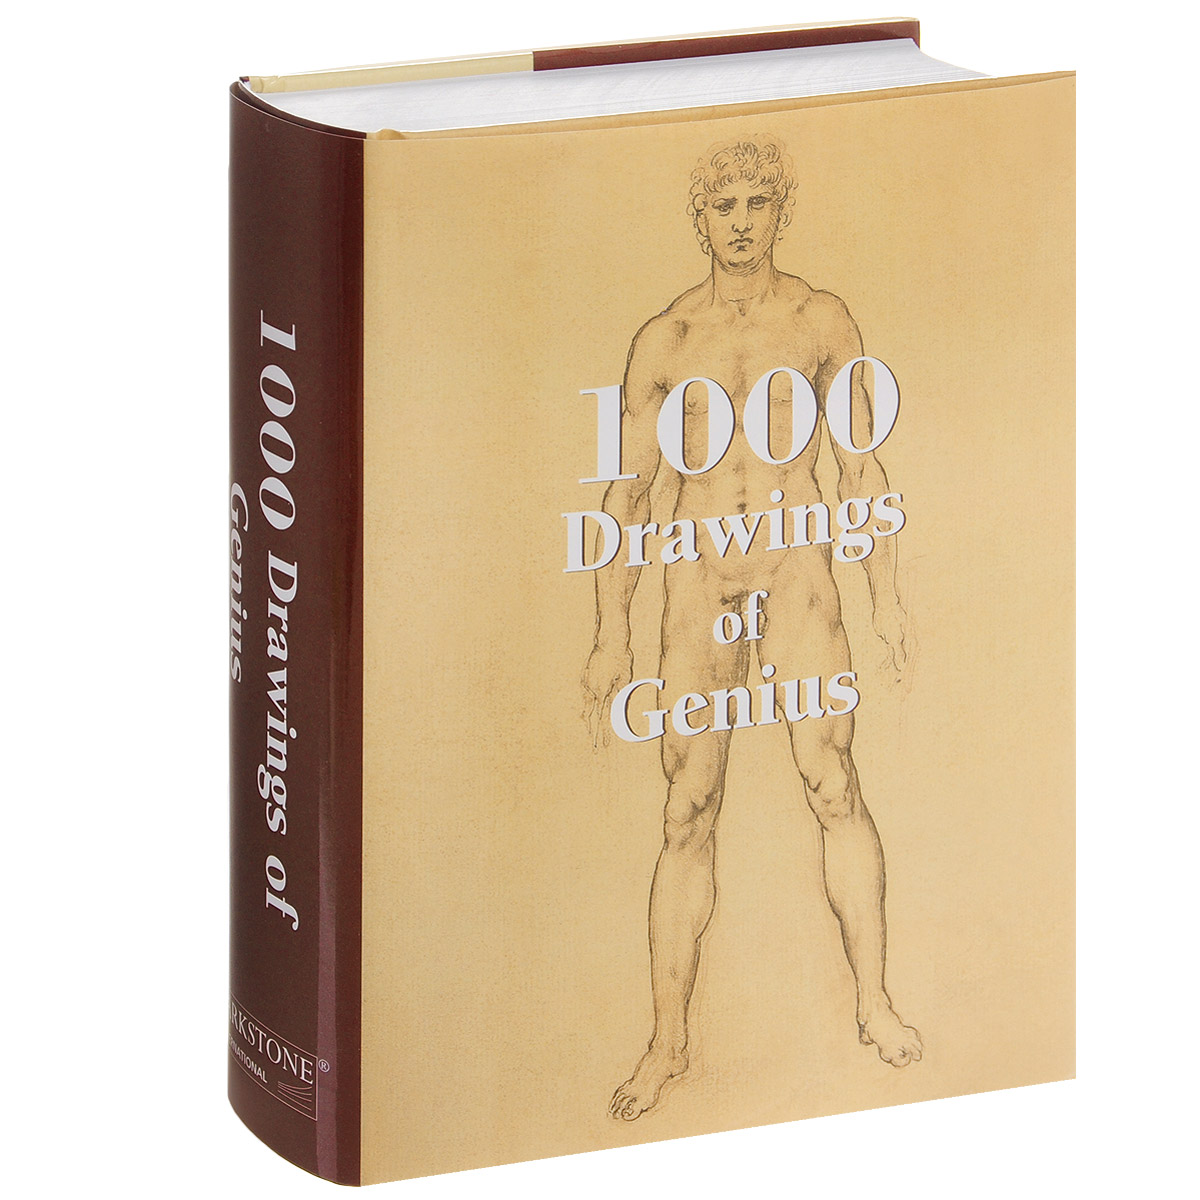 1000 Drawings of Genius dwm 1000